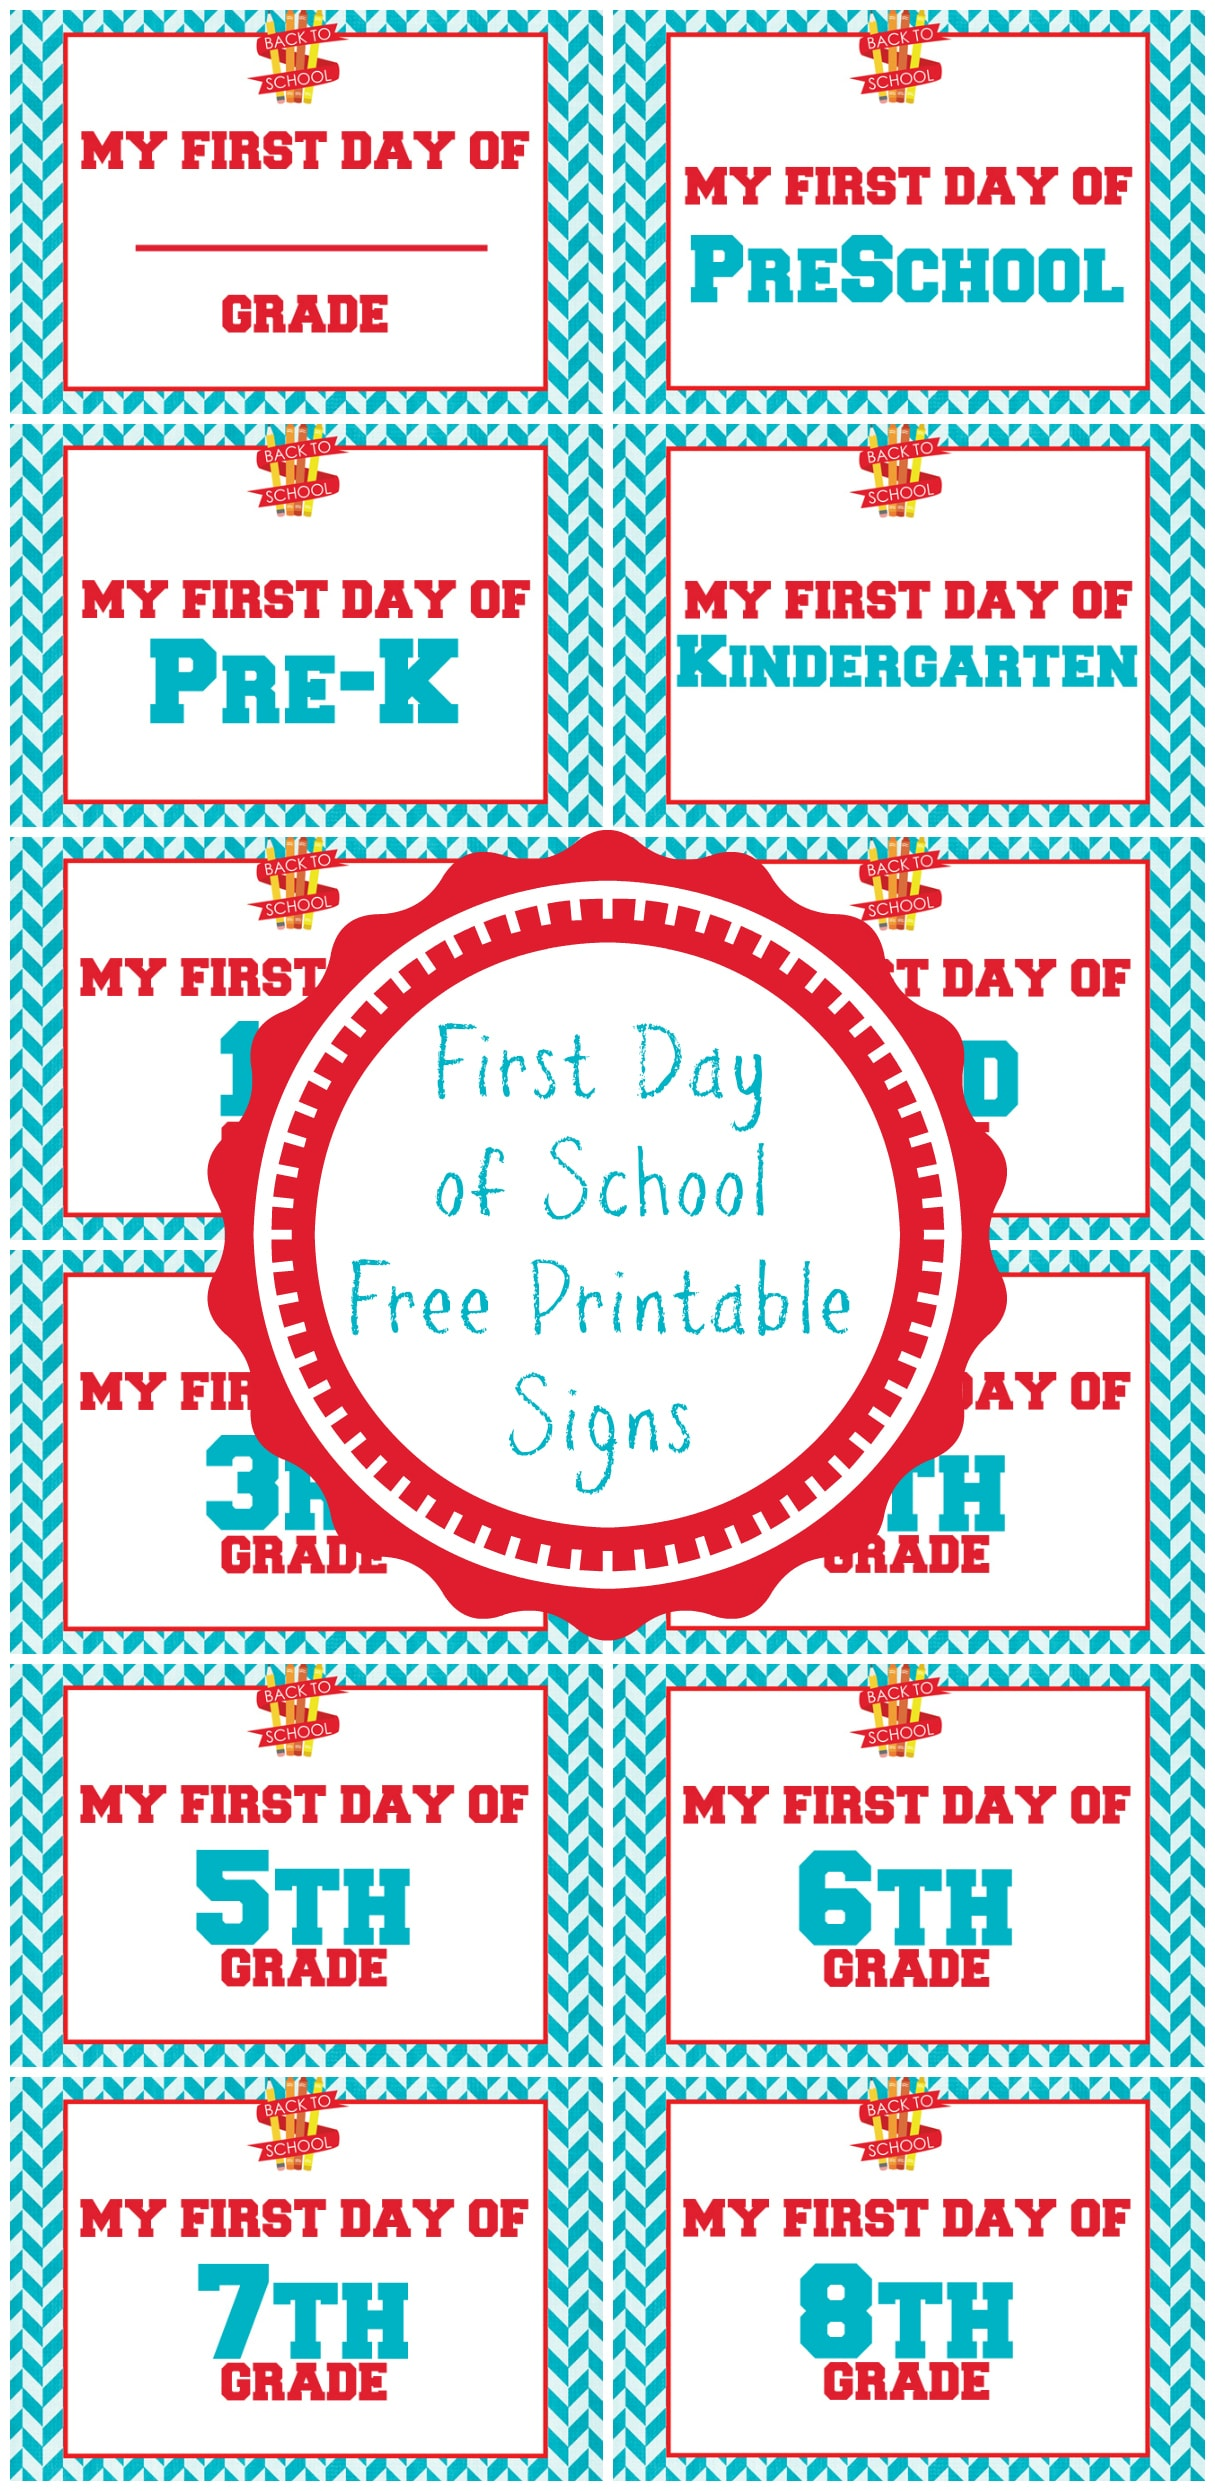 First Day of School Free Printable Signs - A Grande Life